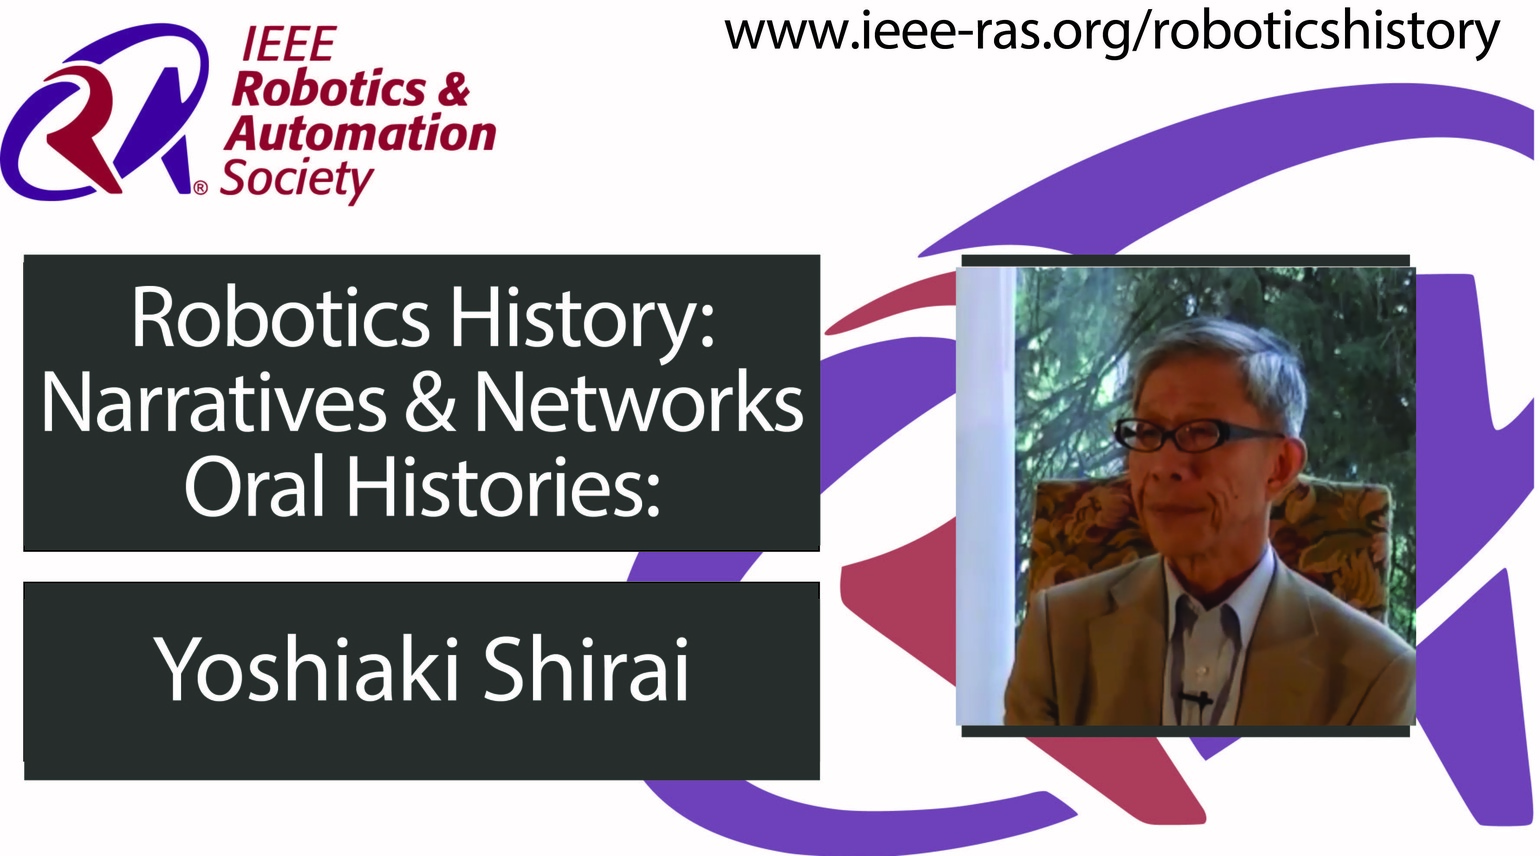 Robotics History: Narratives and Networks Oral Histories: Yoshiaki Shirai